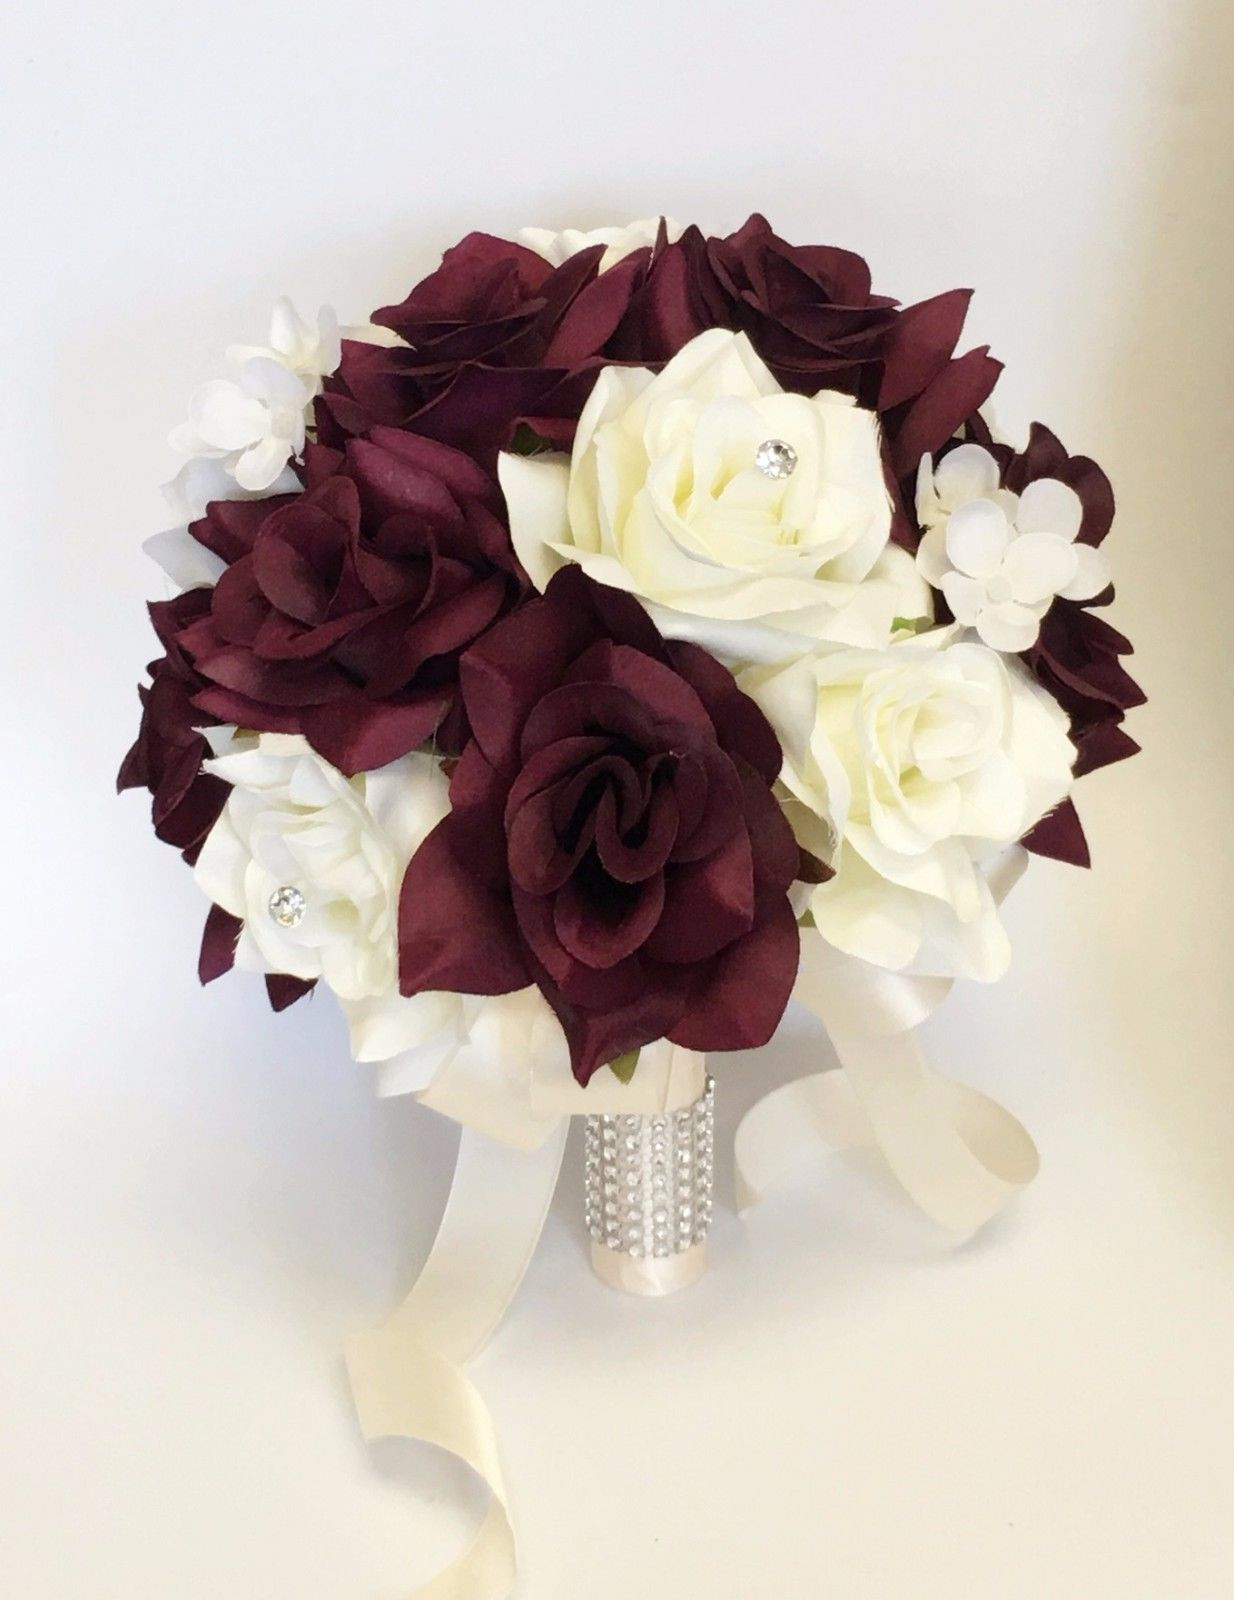 Details About Artificial Rose Hydrangea Bouquet Deep Burgundy Wine Ivory Wedding Theme